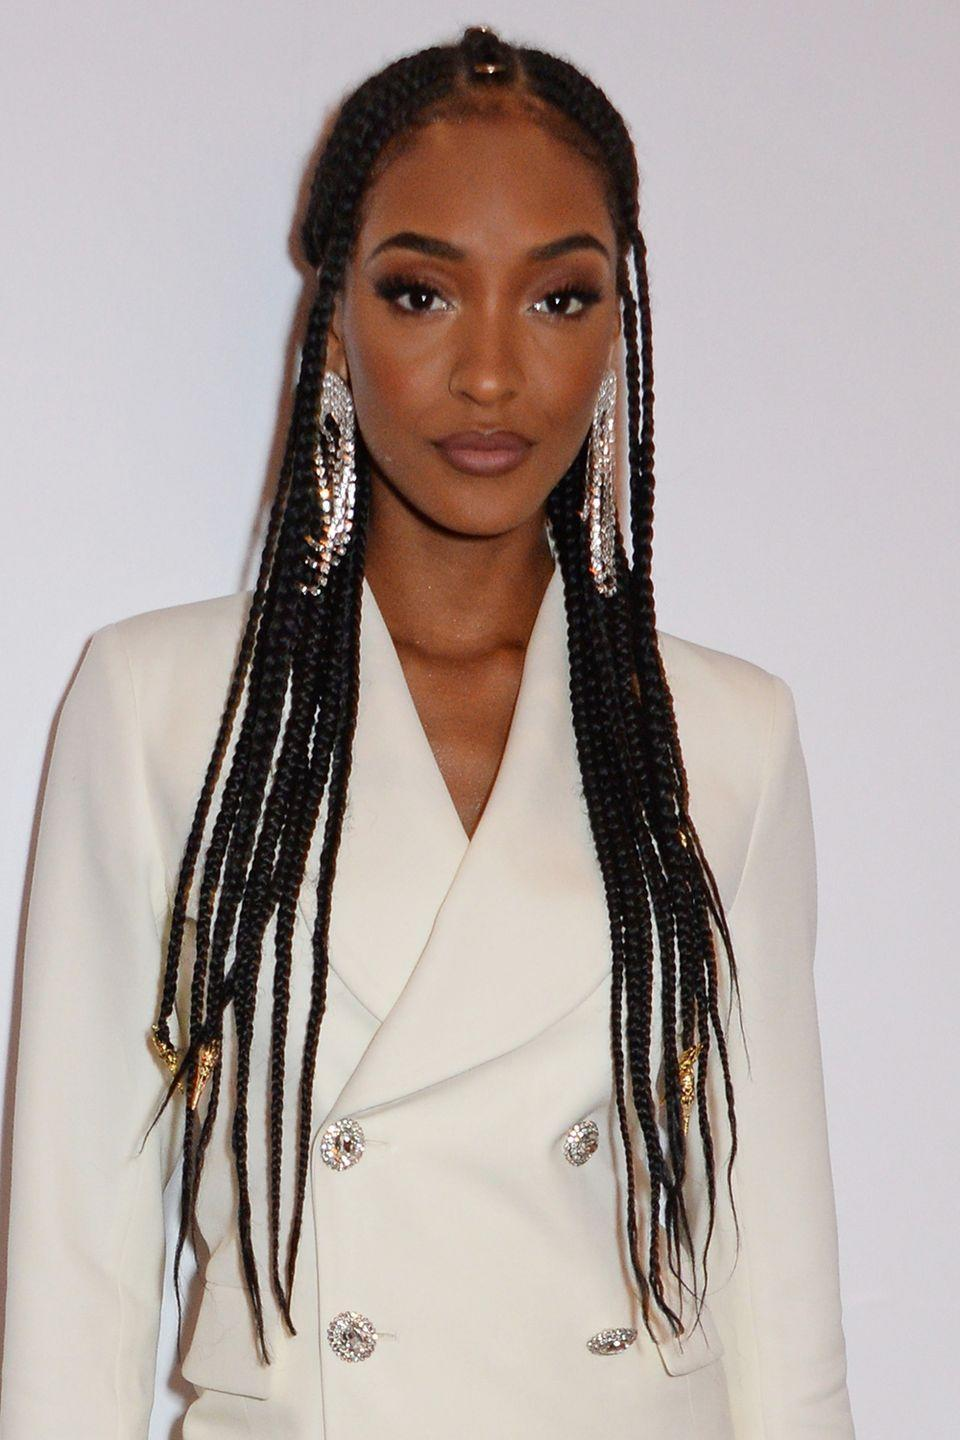 <p>Add a little something extra to your half-up look with some beading like Jourdan Dunn. Her stunning braids are styled in a half- up, half-down look and finished with gold and silver accents.</p>